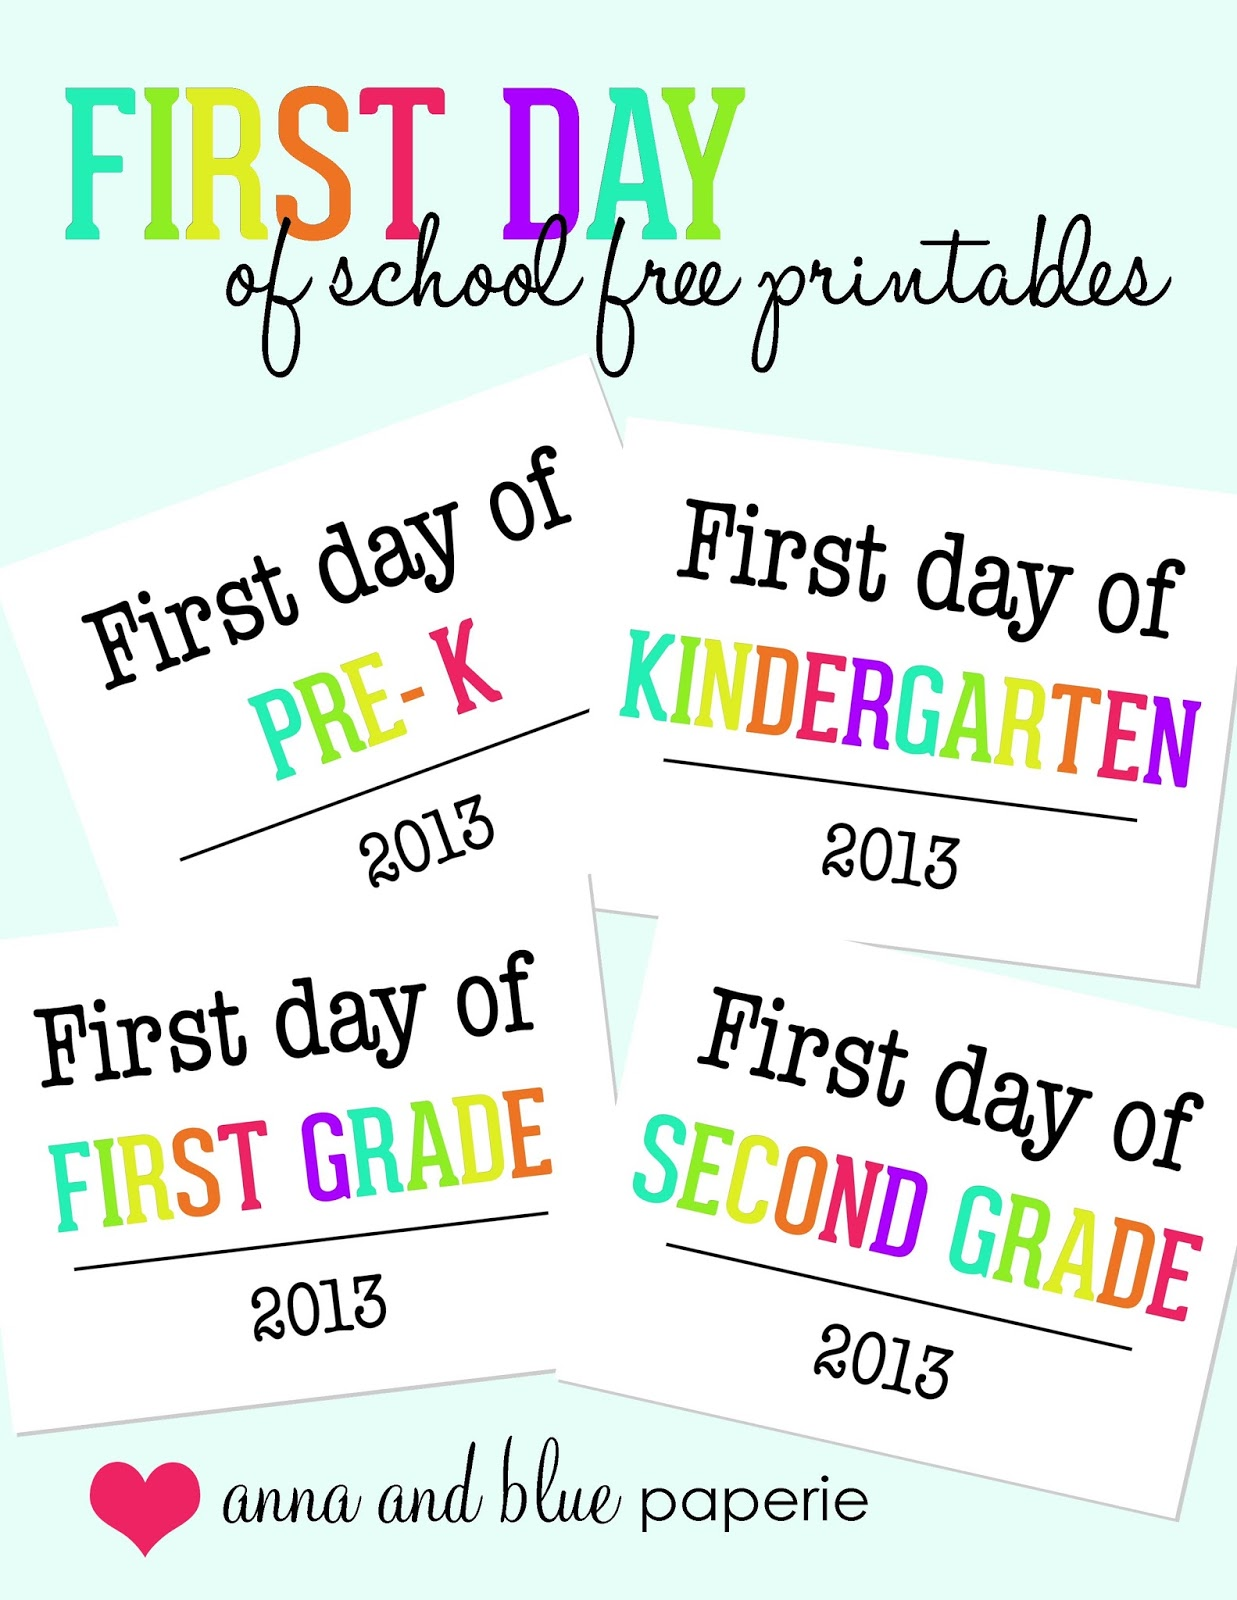 First Day of School Photo Op - Free Printable!